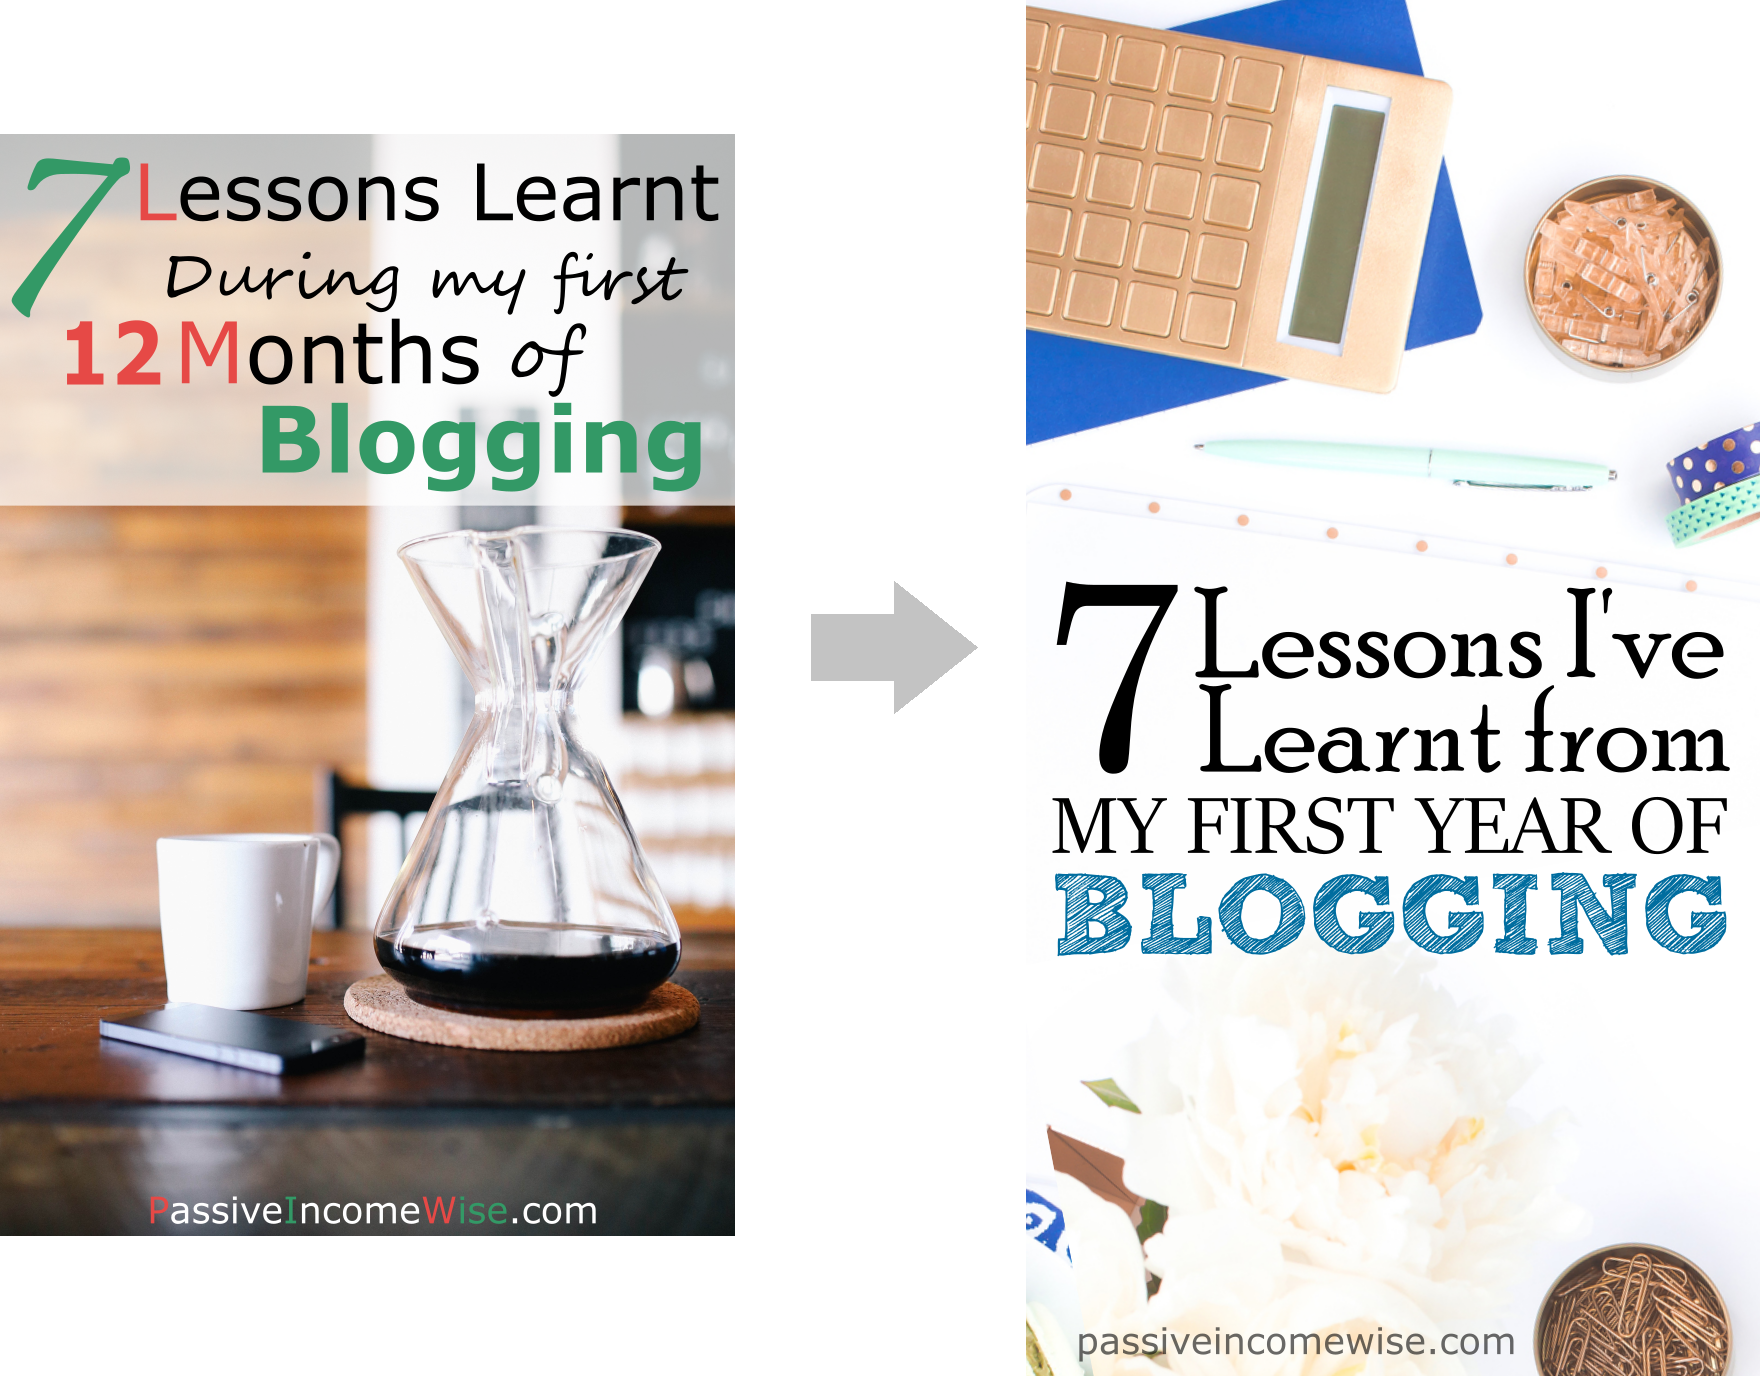 7-lessons-ive-learnt-during-my-first-12-months-of-blogging-pin-change